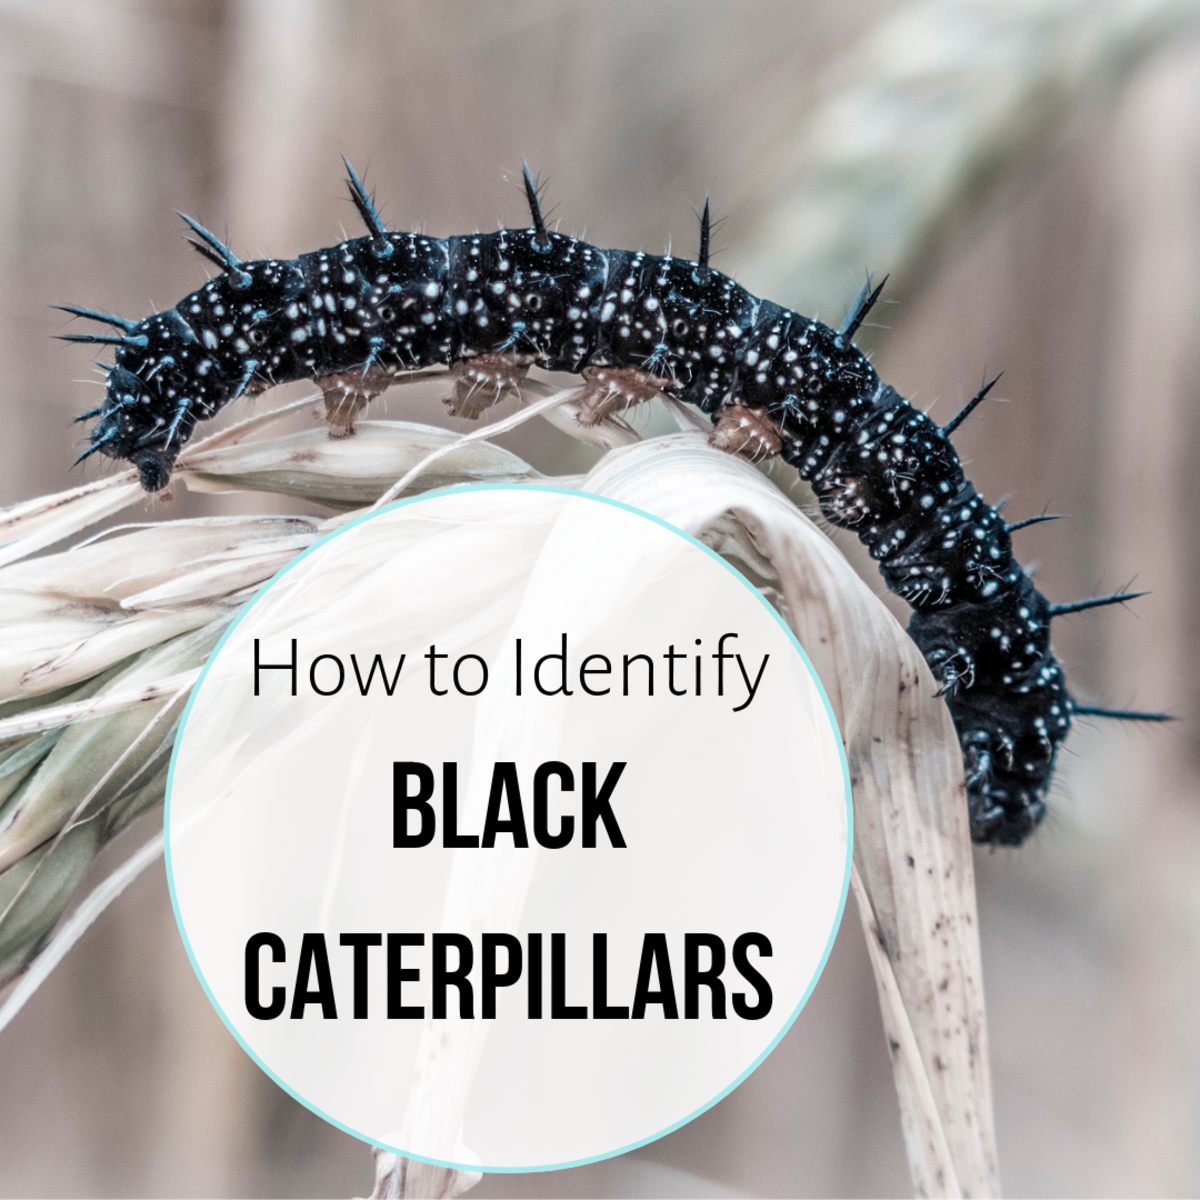 Black Caterpillar Identification Guide